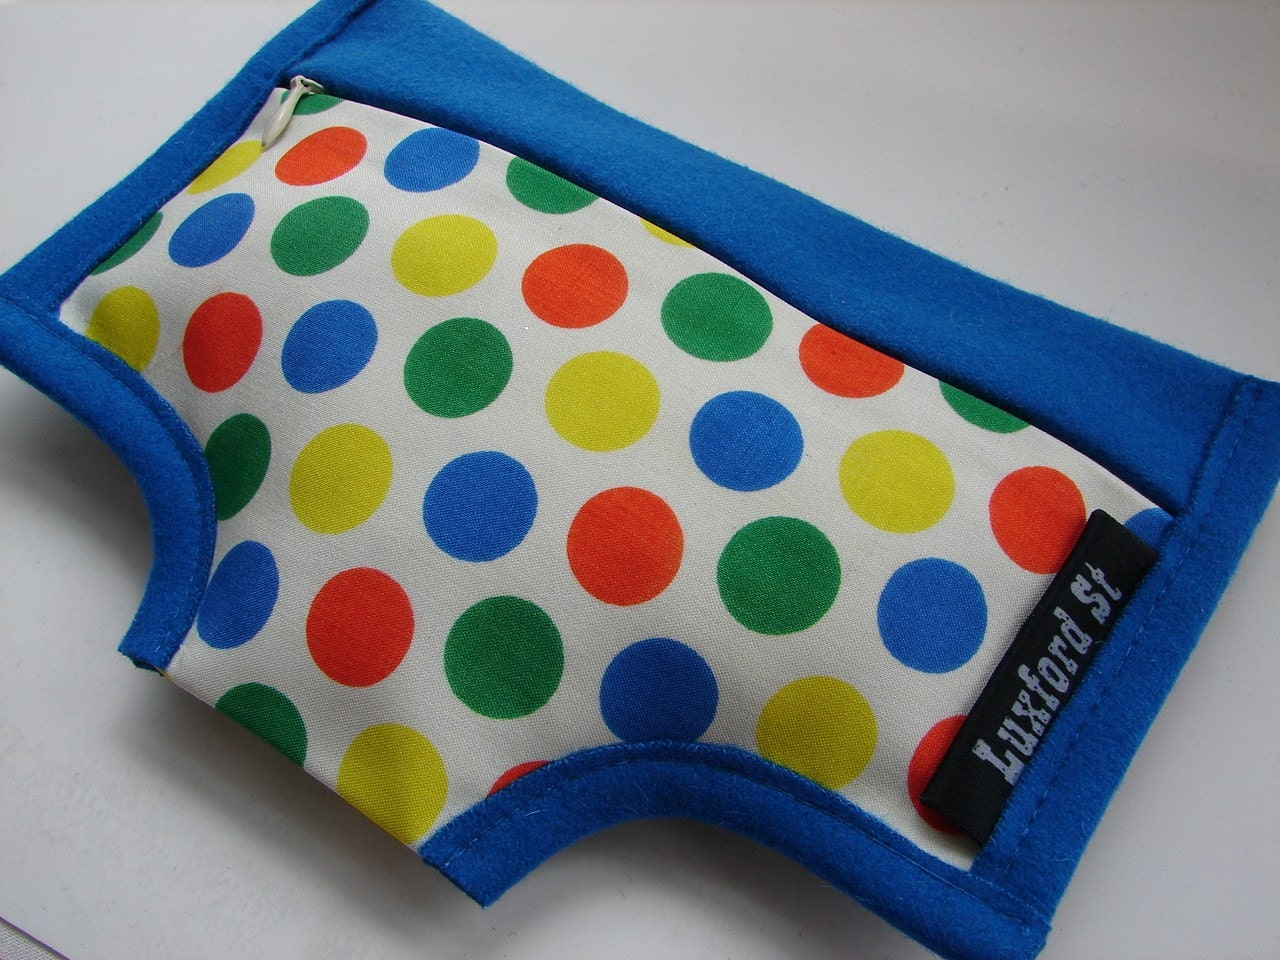 Undies Purse in Vintage Polka Dot